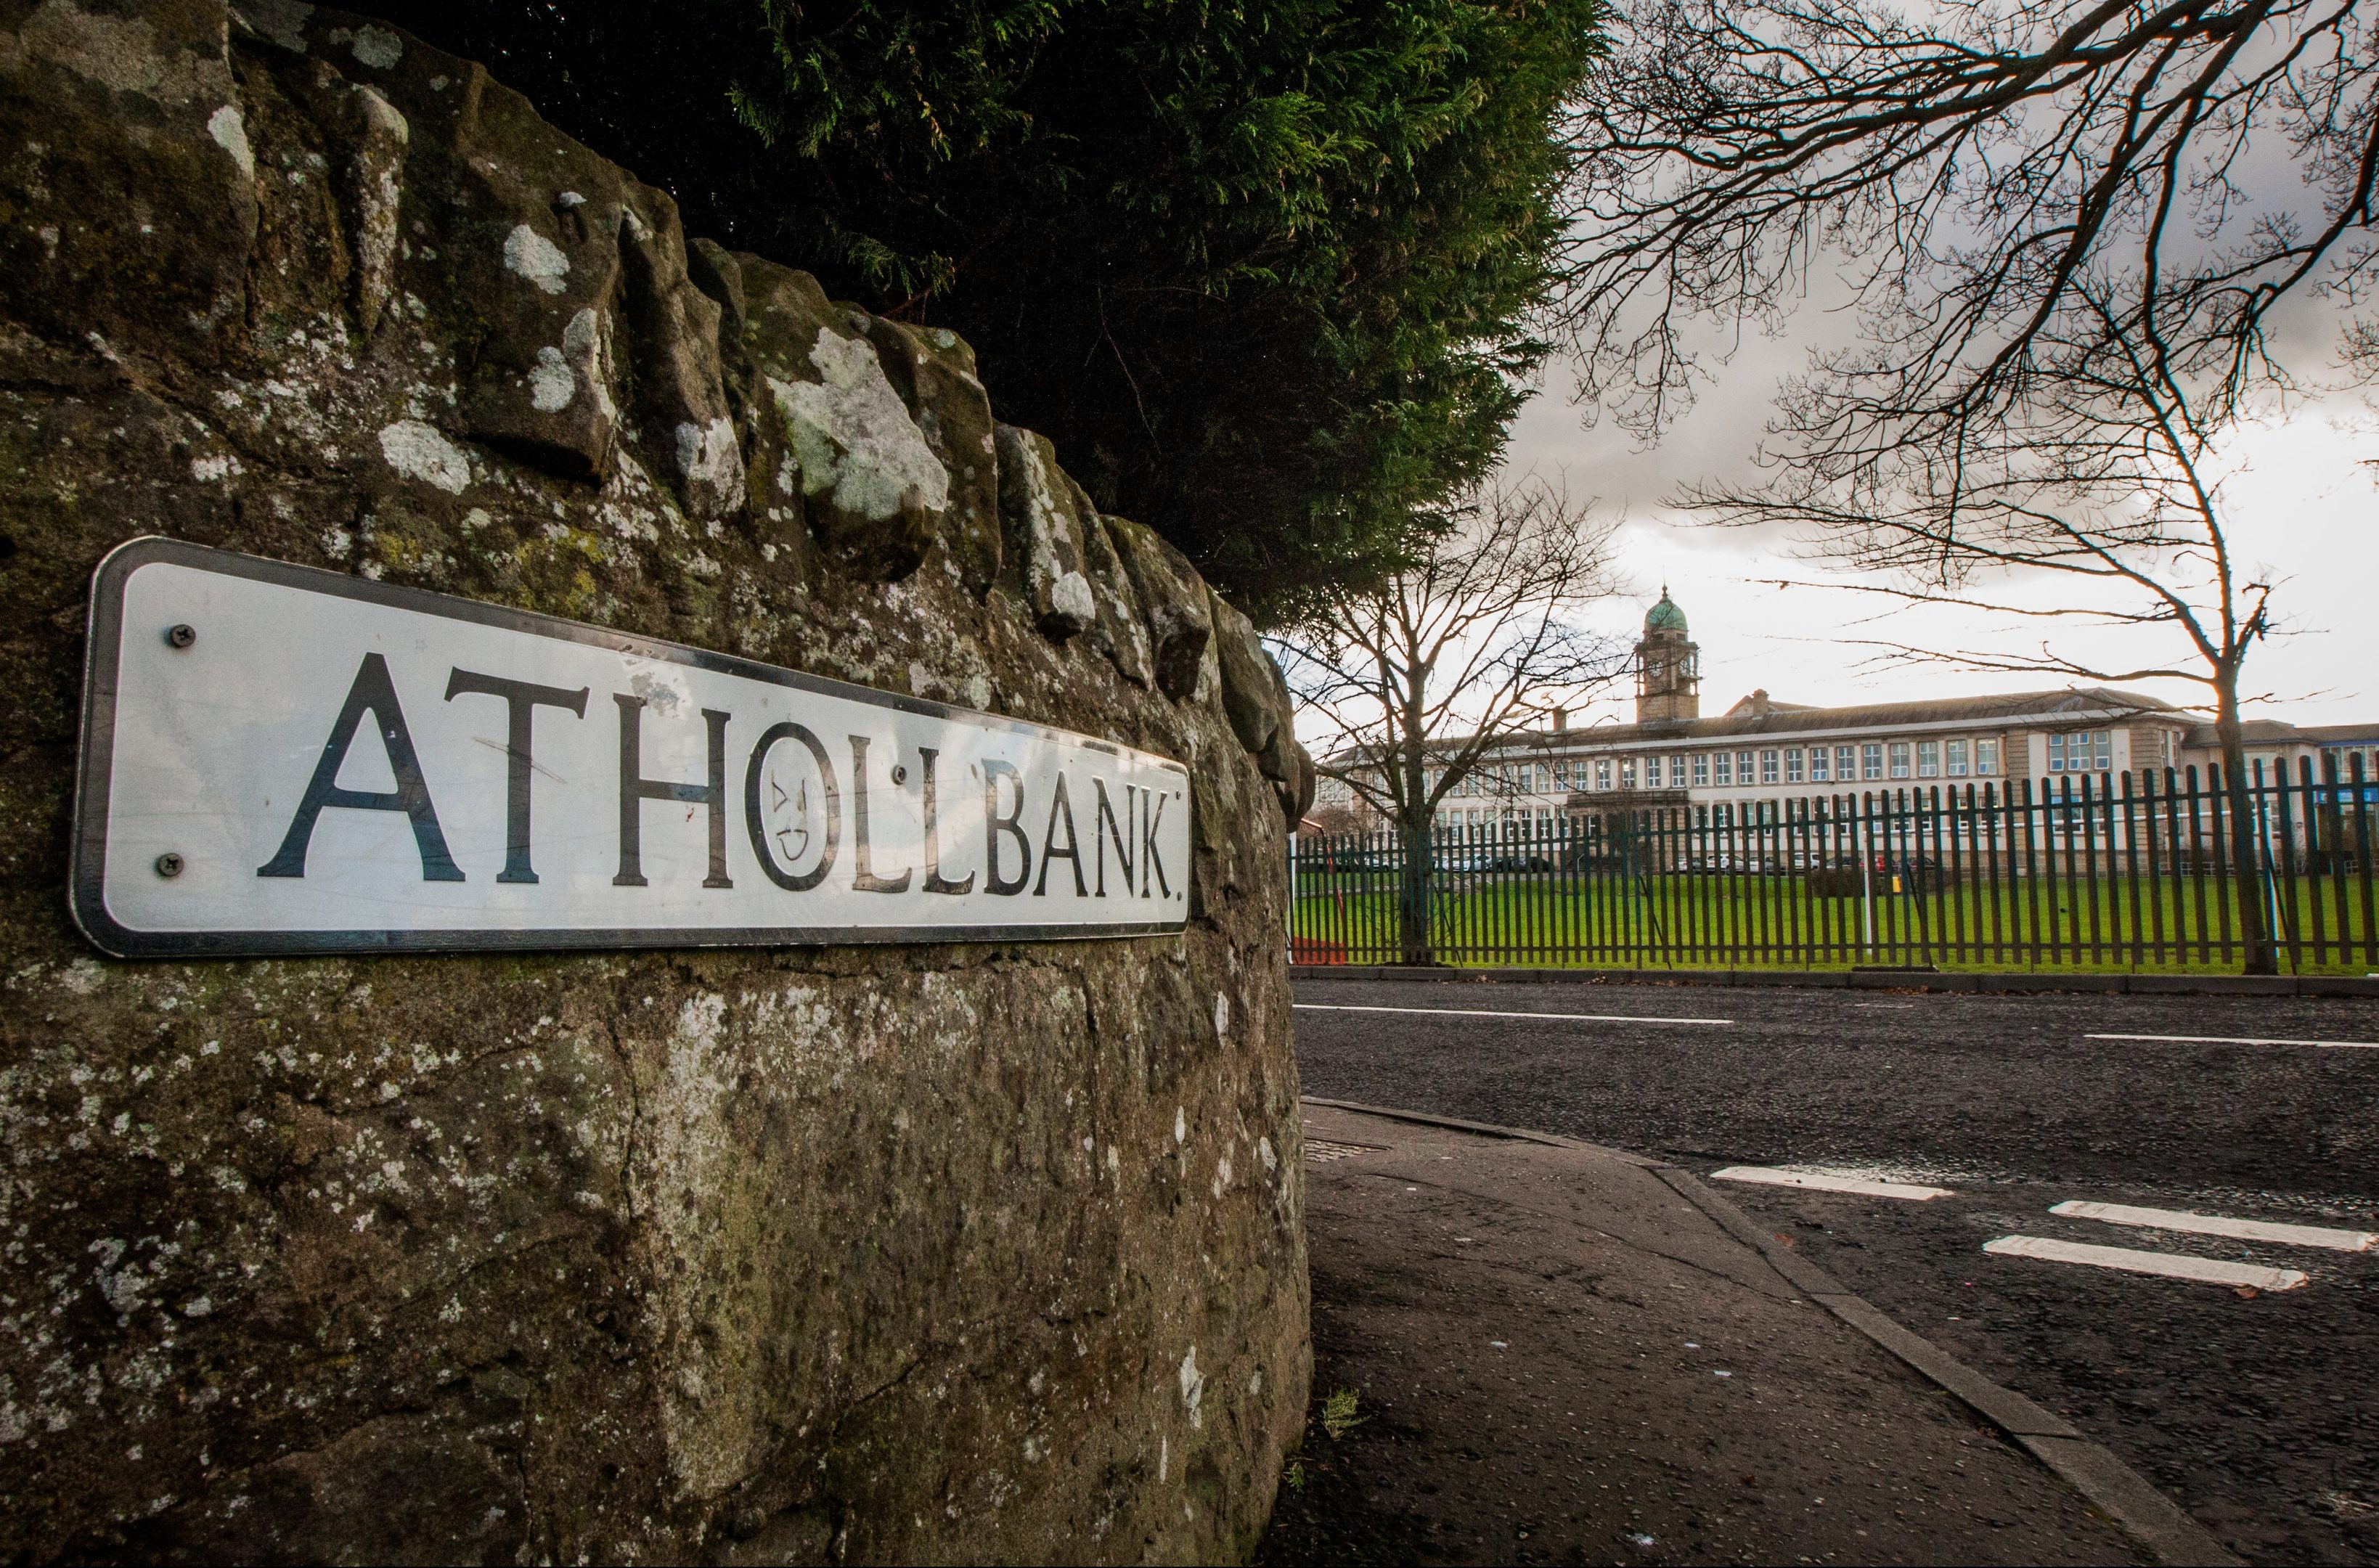 Athollbank with Perth Academy in the background.